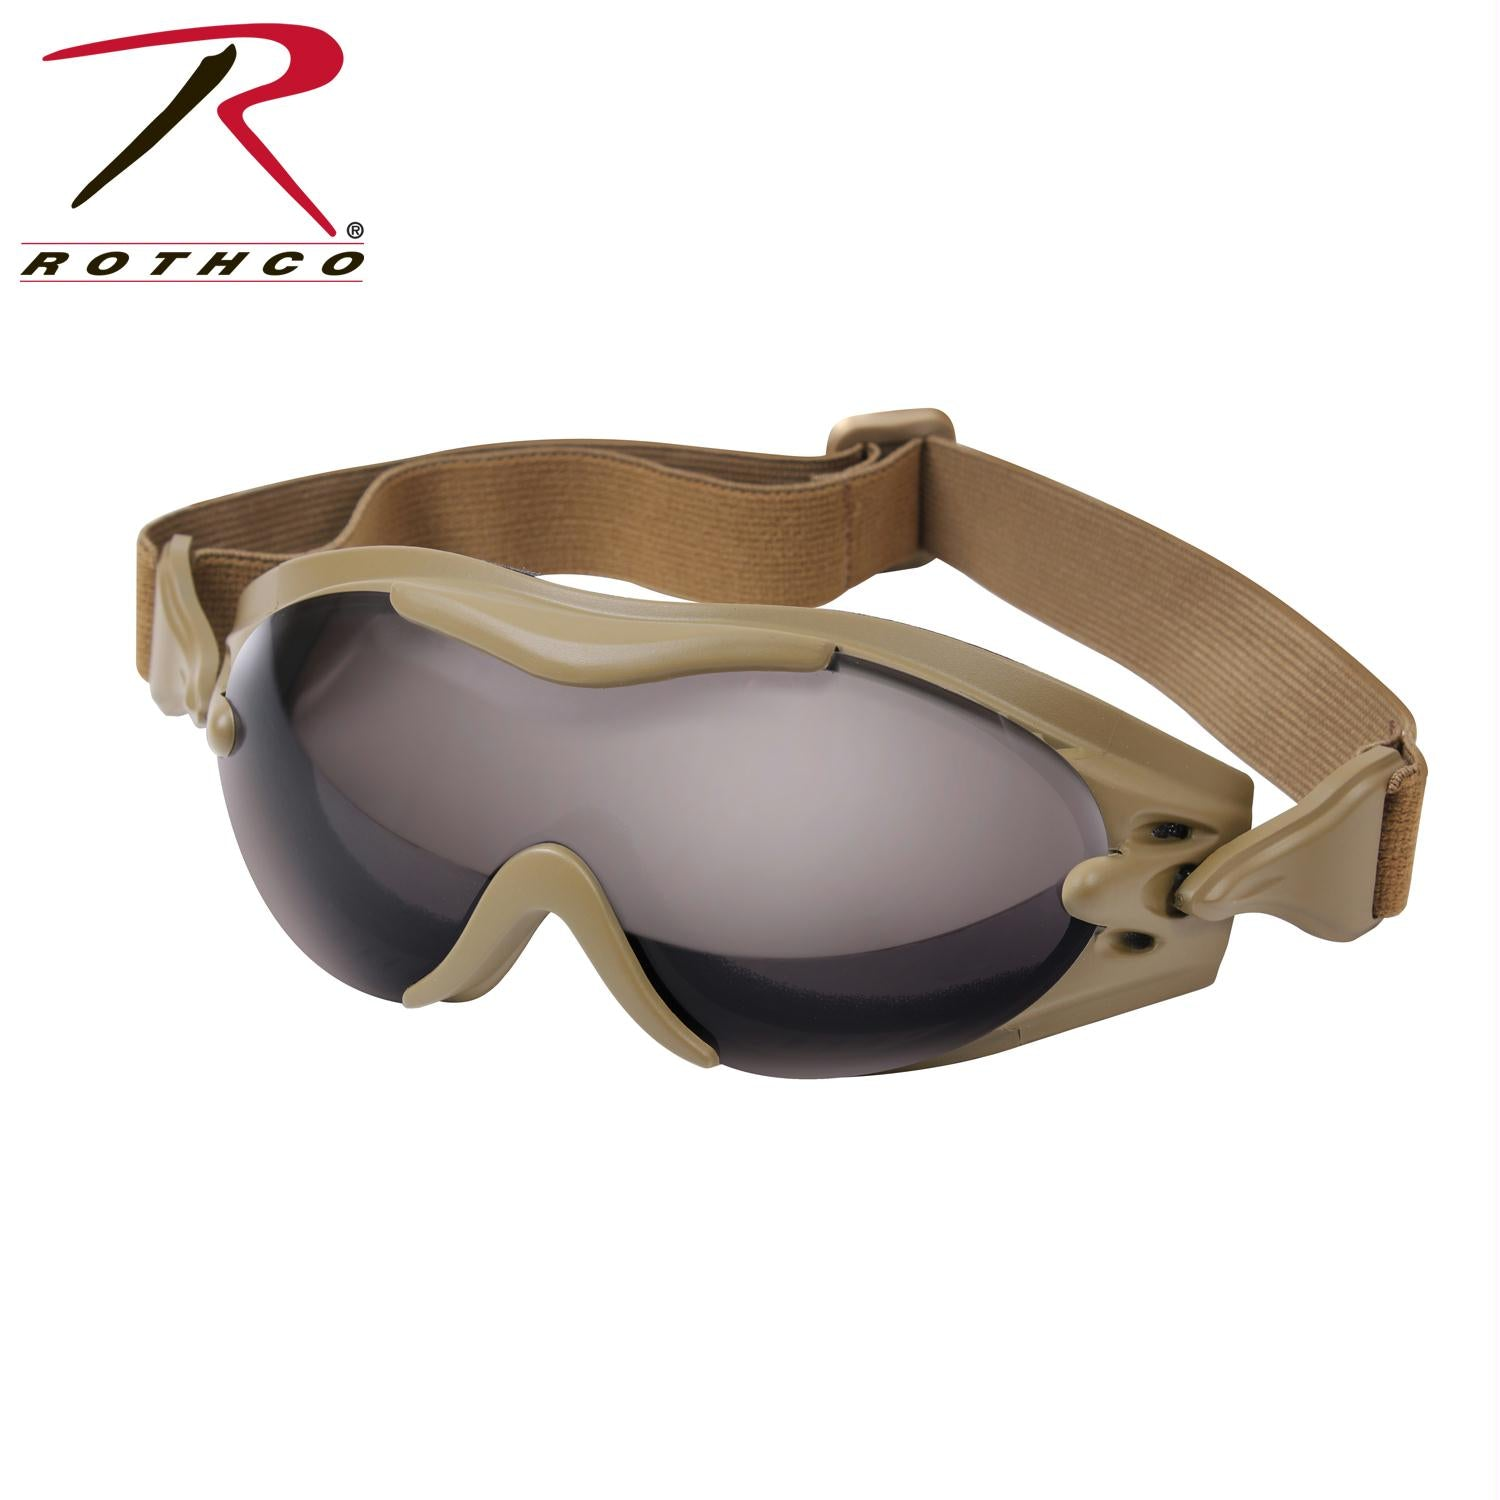 Rothco SWAT Tec Single Lens Tactical Goggle - Coyote Brown